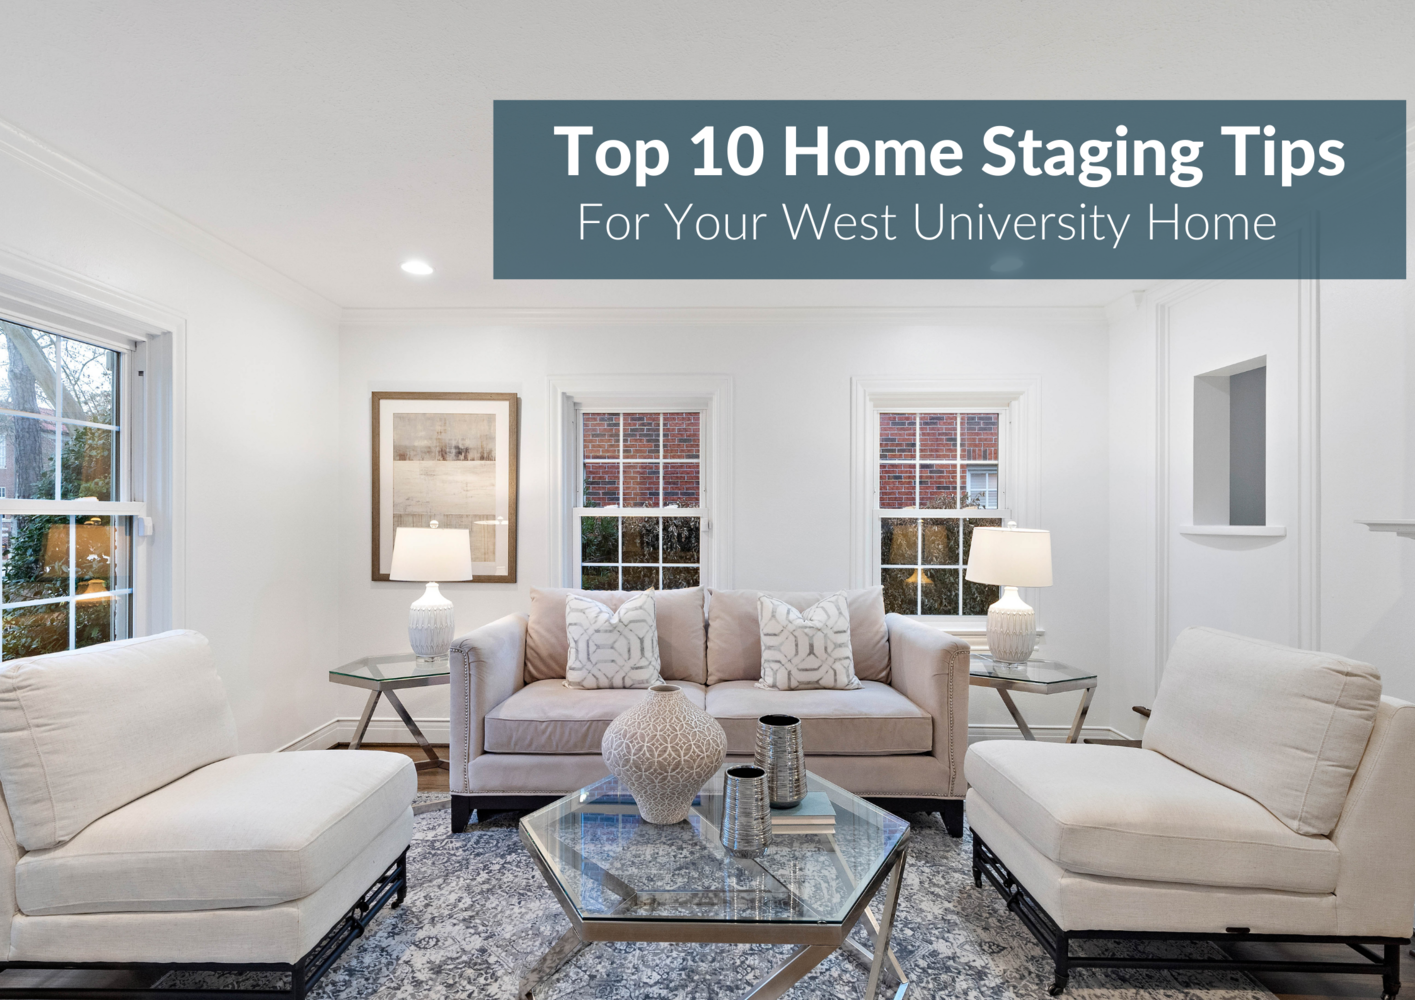 10 Home Staging Ideas For An Impeccable West U Home